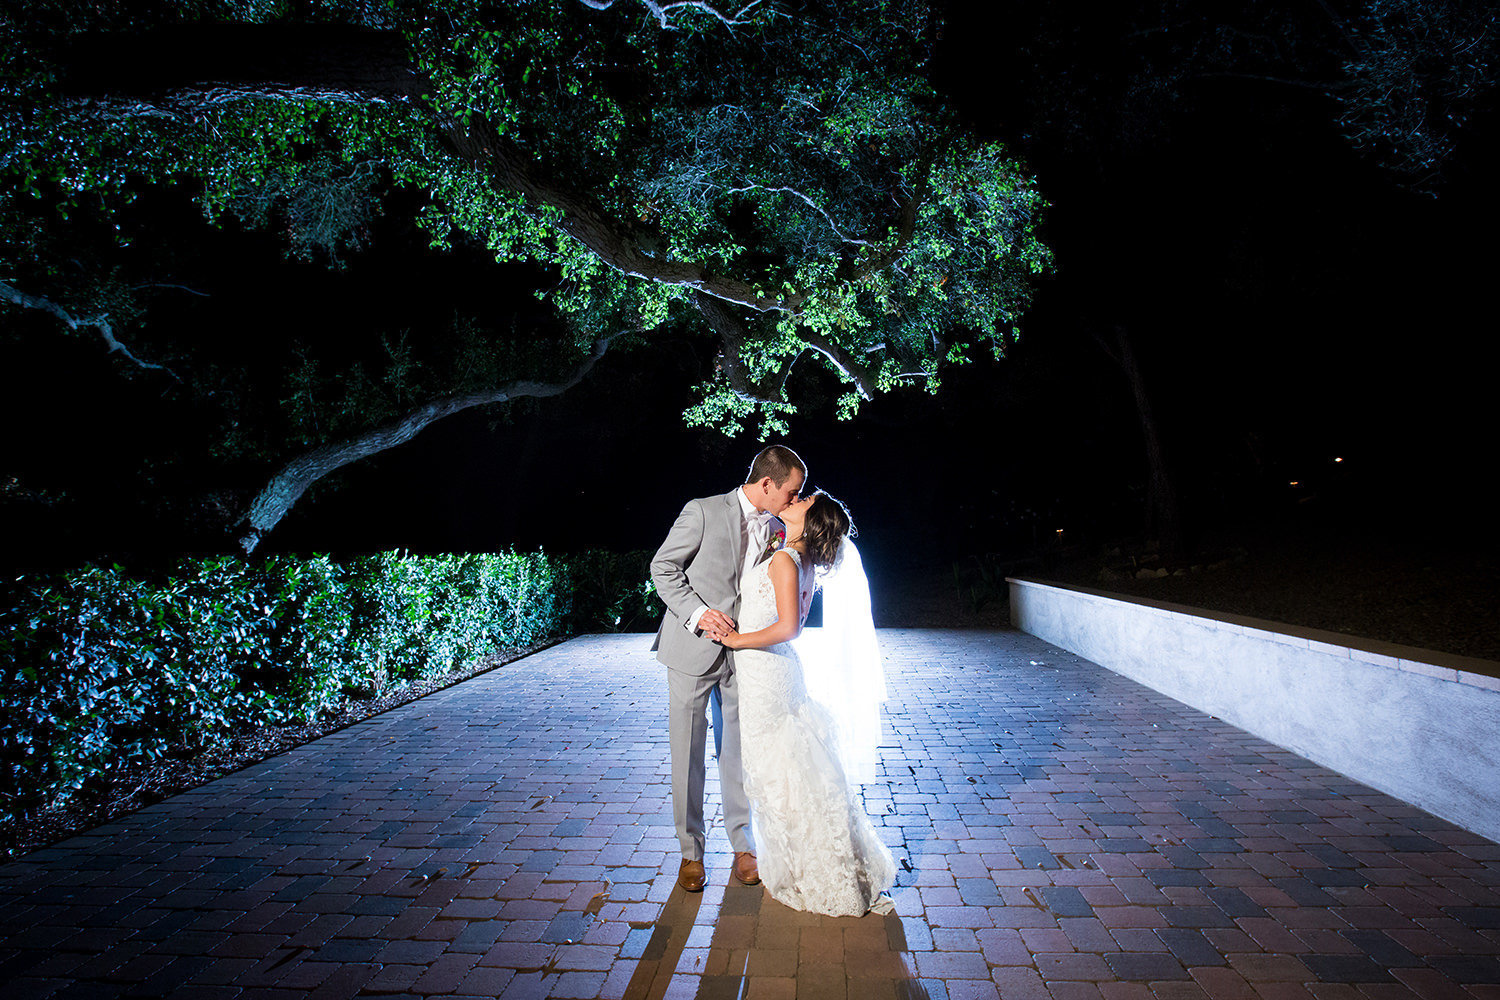 romantic night image bride and groom